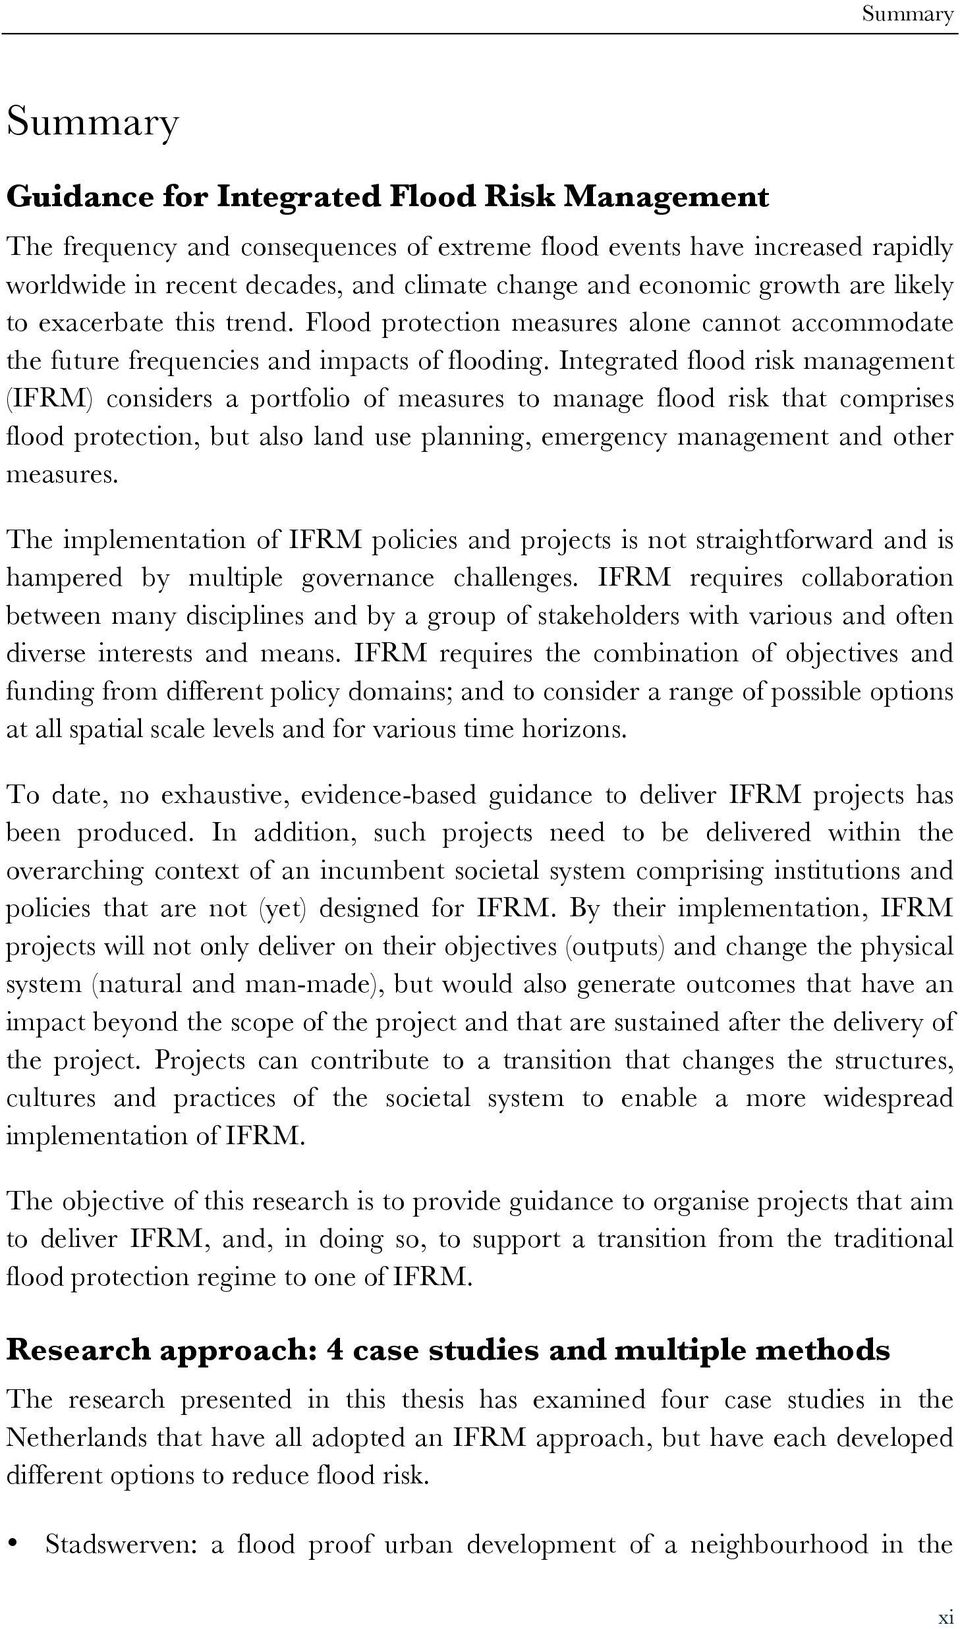 Integrated flood risk management (IFRM) considers a portfolio of measures to manage flood risk that comprises flood protection, but also land use planning, emergency management and other measures.